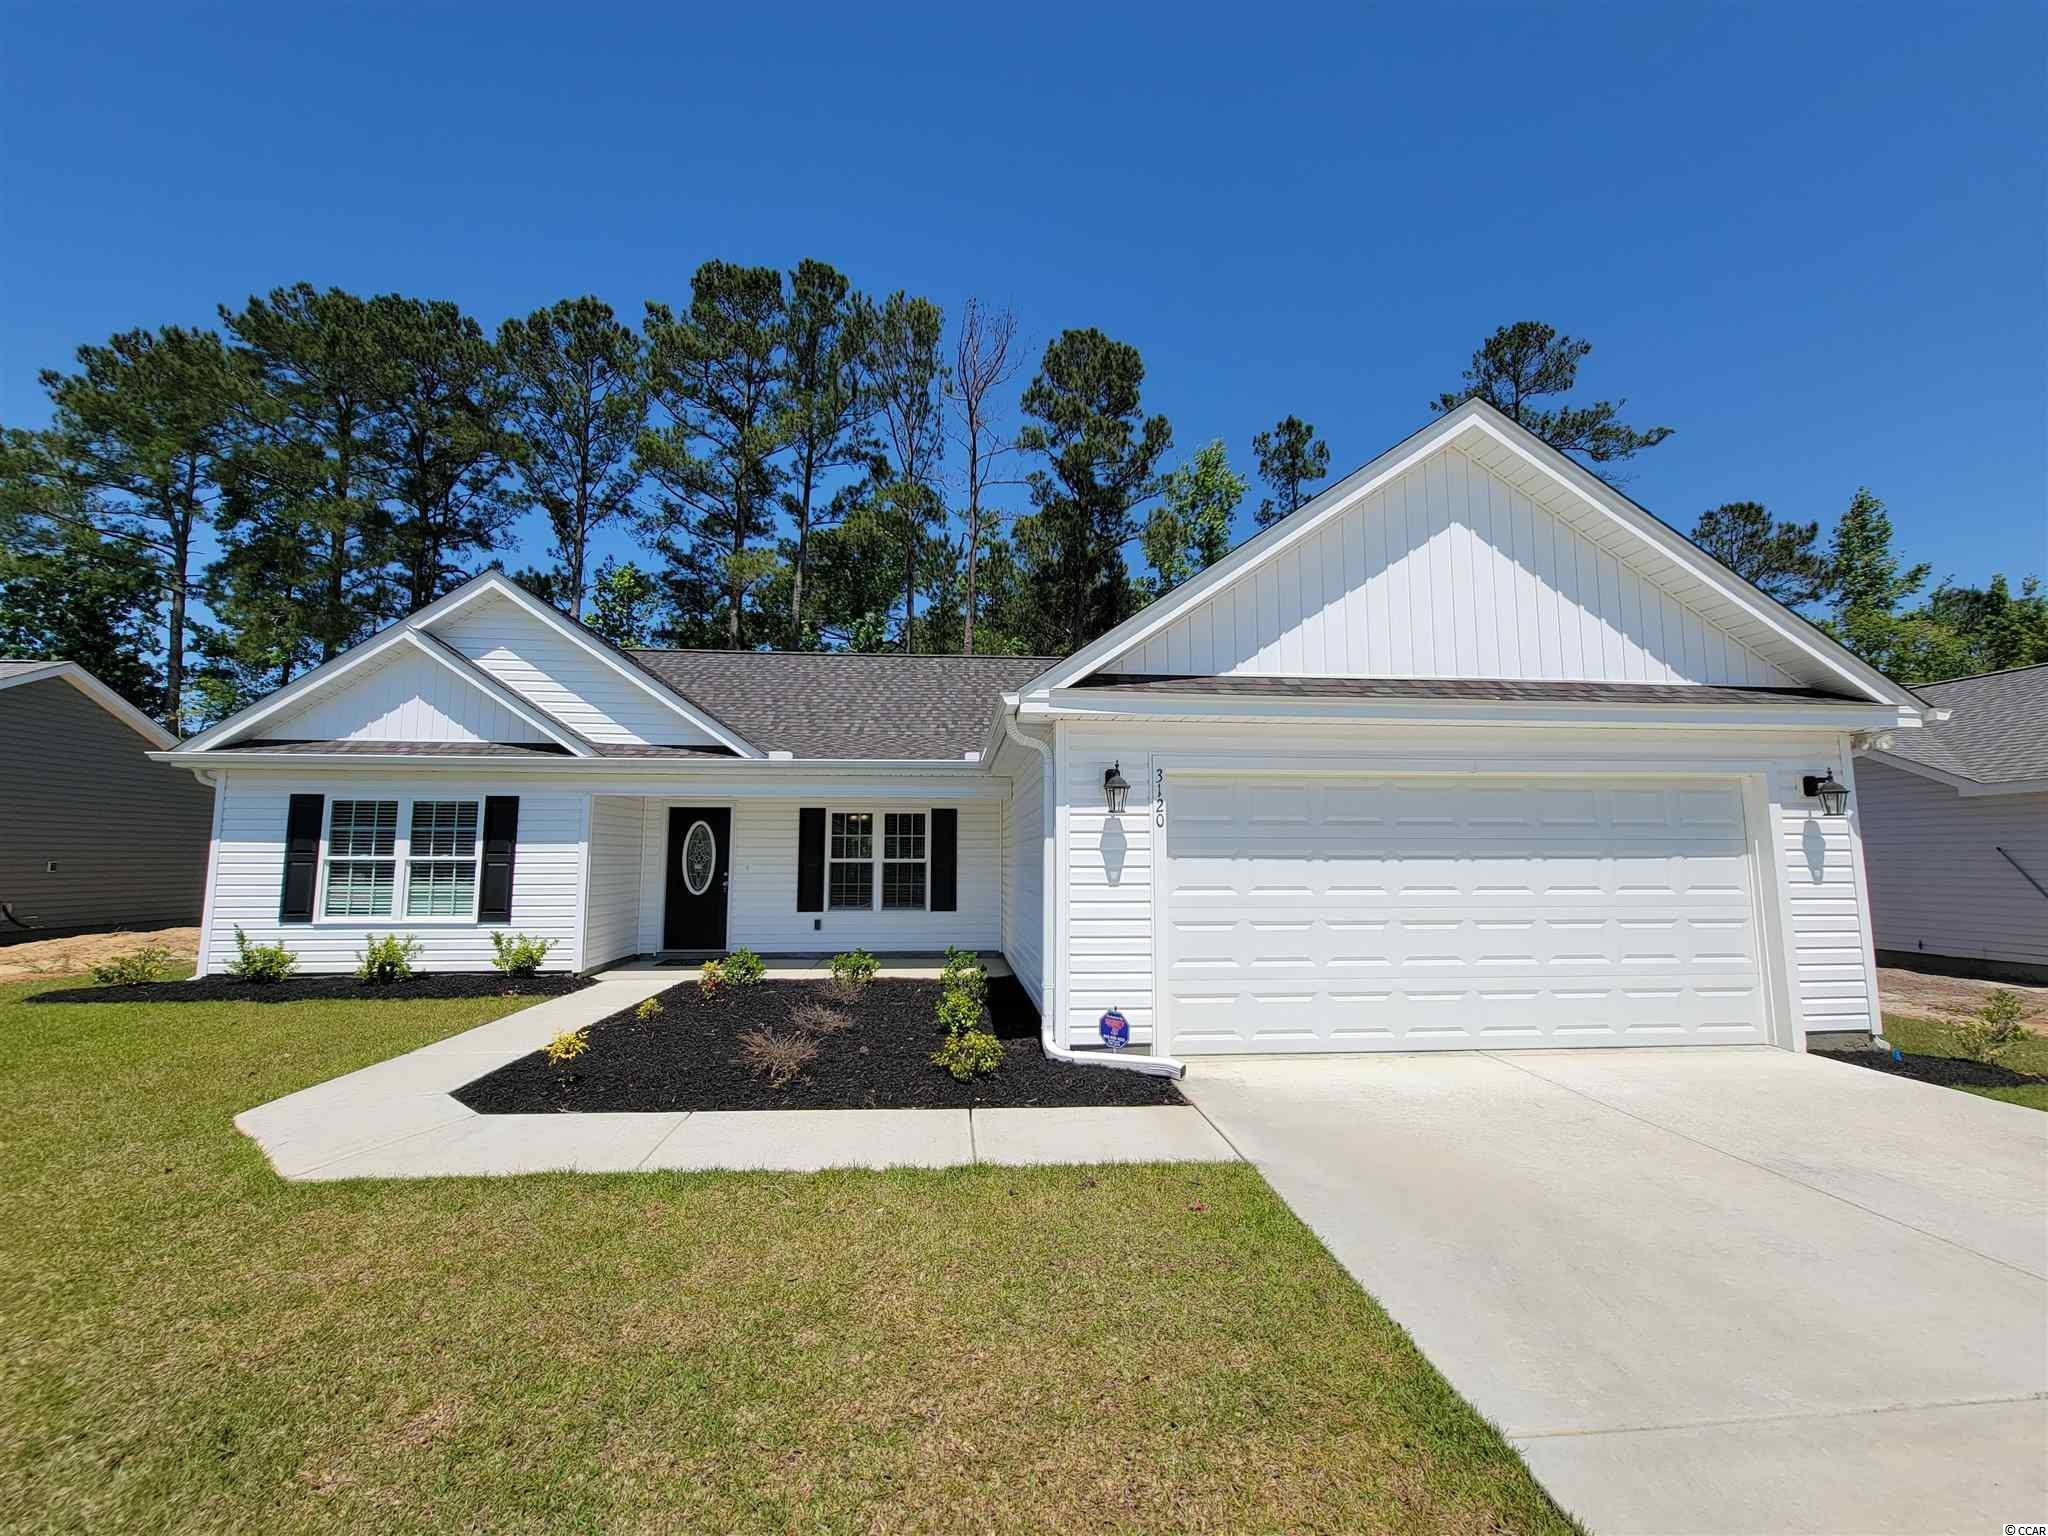 "This Kingston Plan with 3 BR 2 Bath and 2 Car Garage home offers a great open floor plan at 1550 Heated Square Feet with plenty of windows and natural light. This Beautiful Kingston Plan is locatd in Woodland Lakes in Conway, SC. Woodland Lakes is a Natural Gas Community located in Conway, South Conway just minutes to Historical Downtown Conway, Coastal Carolina University, and Conway Medical Center. Plan offers all of the right features and benefits.  Features include but are not limited to 3 Bedrooms 2 Baths, 2 Car Garage, Great Open Floor Plan, Vaulted and Trayed Ceilings, 2 Ceiling Fans, Plant Shelf, and Vinyl Windows, Plans also include Separate 10x14 Concrete Patio, Screened Porch, Carolina Room Sidewalks to Front Entry and Driveway. This home includes      the luxury of a Tankless Hot Water Heater, Gas Heat, Gas Stove and Oven. This Home also includes 36"" Profiled Kitchen Cabinets with Top Molding Trim and Door Knobs, Stainless Steel Appliances, Kitchen Pantry, Linen Closet, Completely Trimmed and Painted Garage with Drop Down Storage Access, which is Floored for your convenience, and Electronic Garage Door with Remote Openers. Interior window and door trim, ""Low E"" Energy Efficient Windows, Upgraded Insulation Package, Landscaped, Sodded Yard, and Irrigation (Automatic Yard Sprinklers) and so much more. This home in Woodland Lakes is built with a ""Maintenance Free"" Lifestyle in mind. Woodland Lakes is South Conway's Newest Community conveniently located near Shopping, Medical Offices and Hospitals, Restaurants, and Schools.   Call the Onsite Model for New Homes Availability and to make an Appointment to see this Kingston Plan in Woodland Lakes."